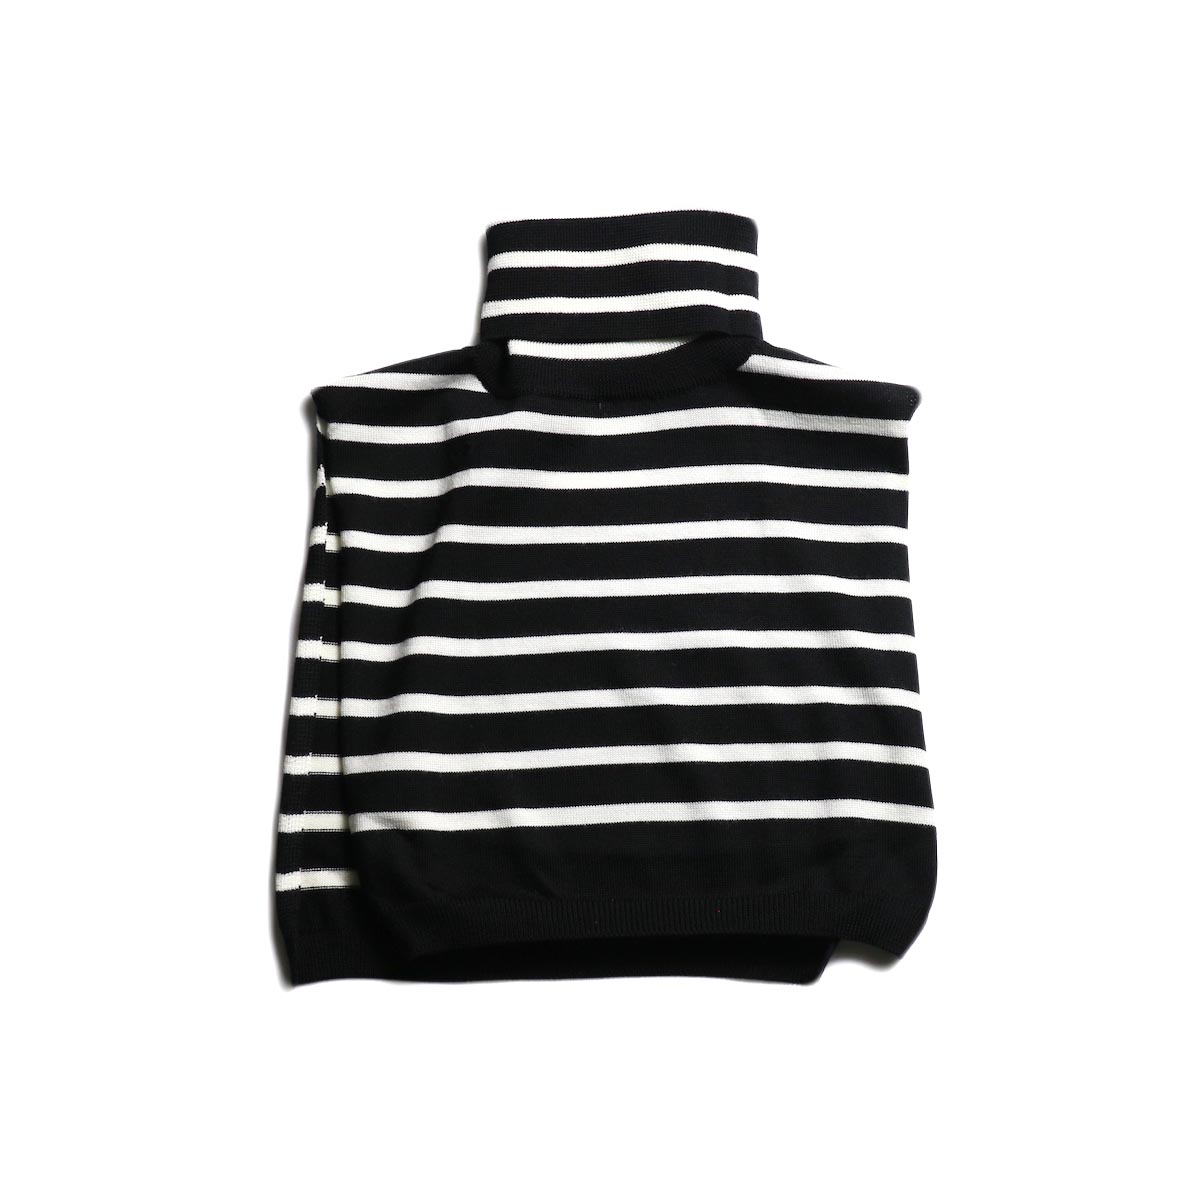 The Soloist / sk.0024AW19 turtleneck dickie. -Black × White